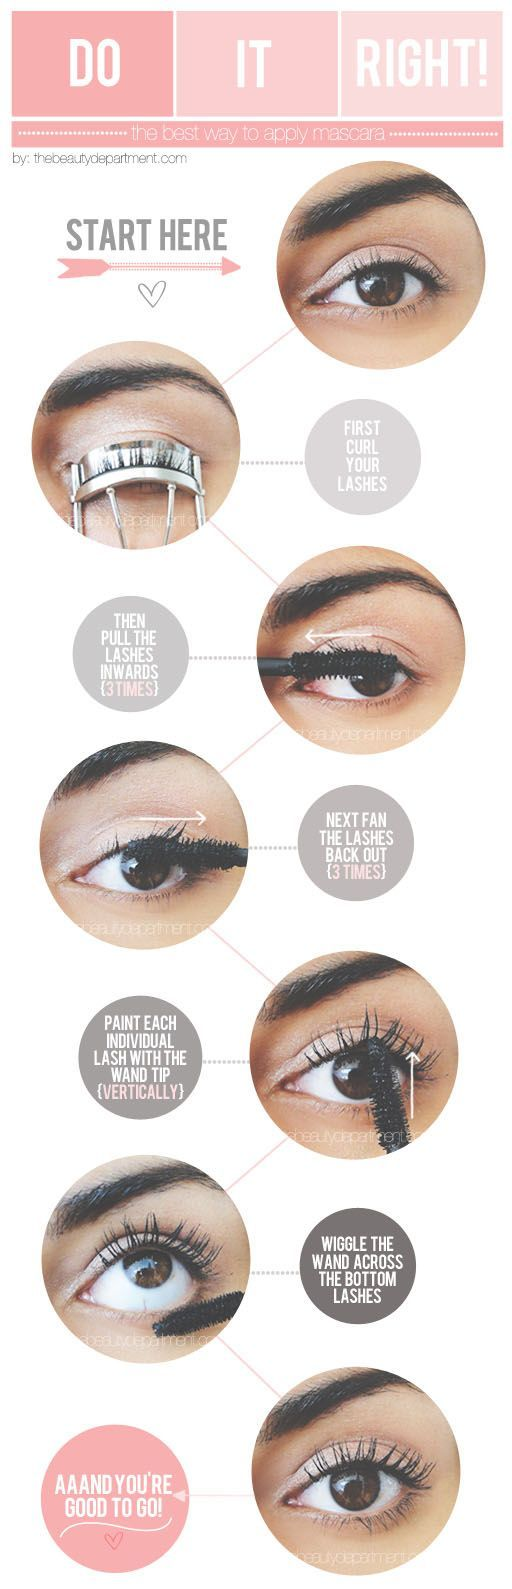 11 Simple Makeup Tips For Beginners - Society11  Simple makeup